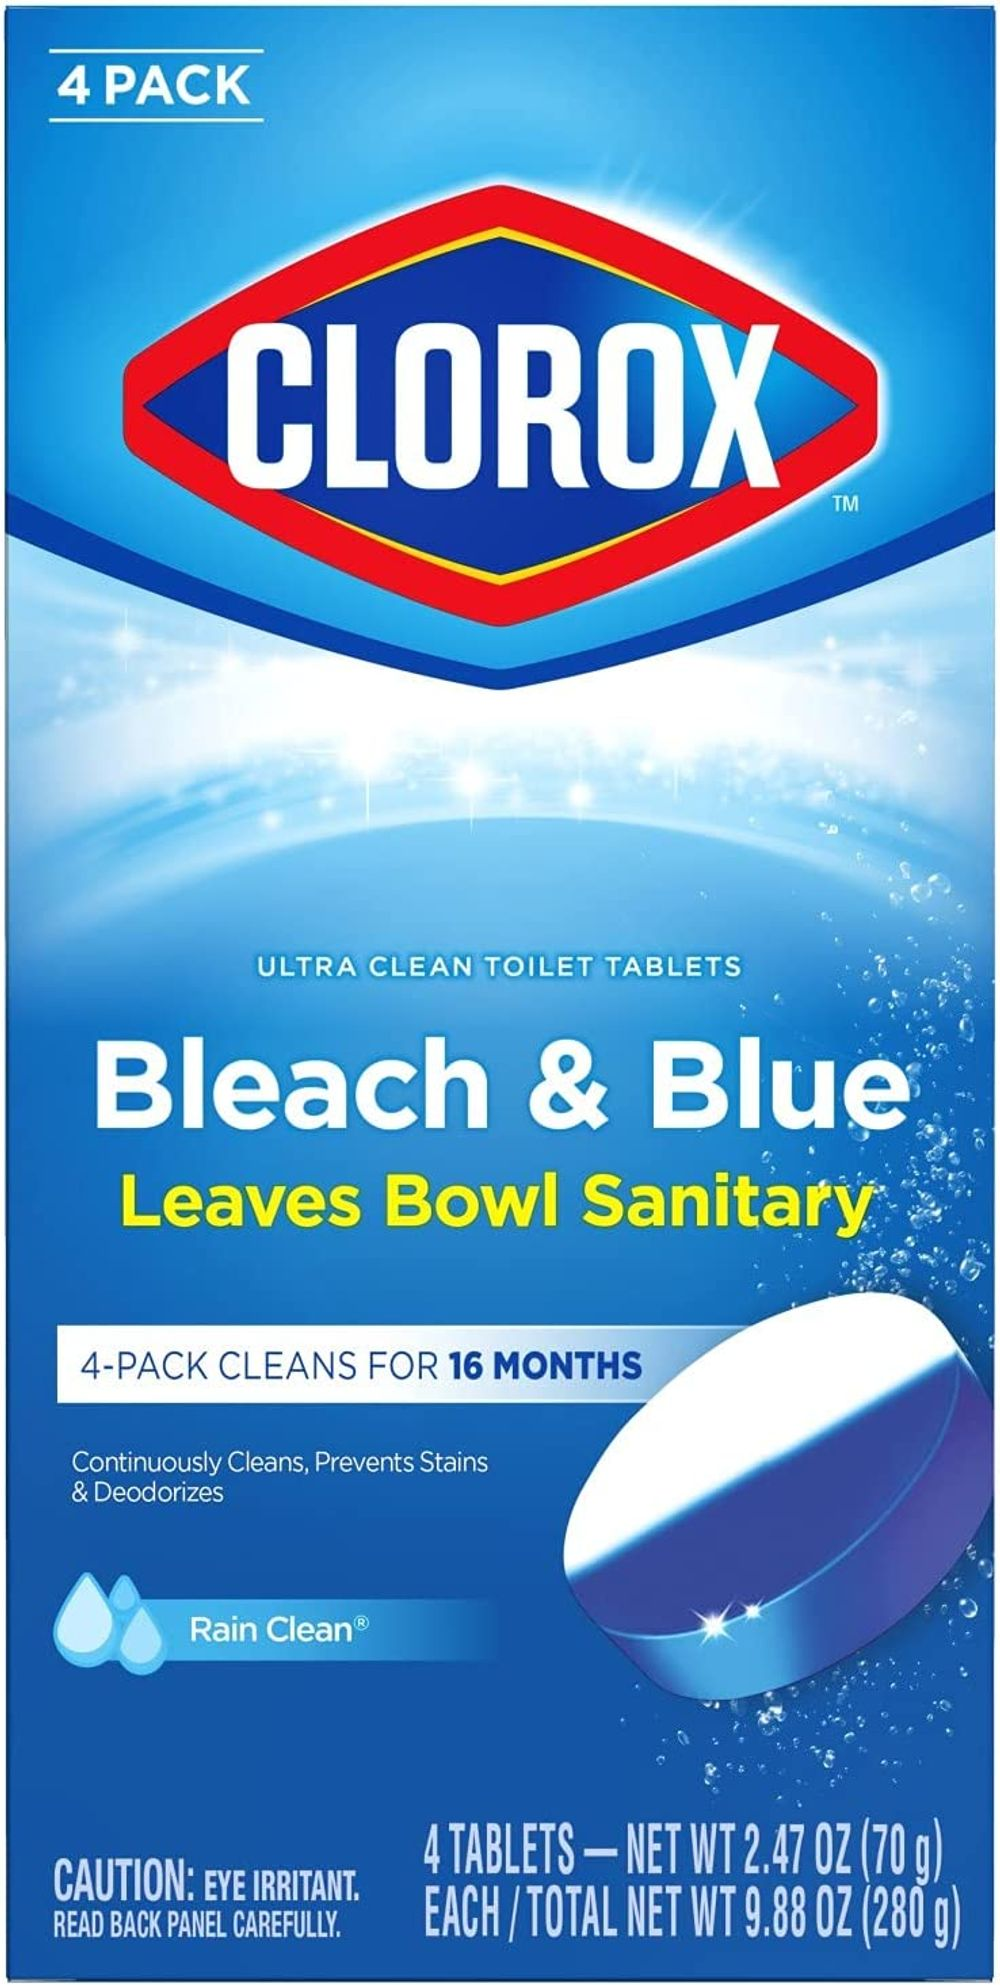 Clorox Ultra Clean Toilet Tablets Bleach & Blue, Rain Clean Scent 2.47 Ounces Each, 4 Count (Package May Vary)